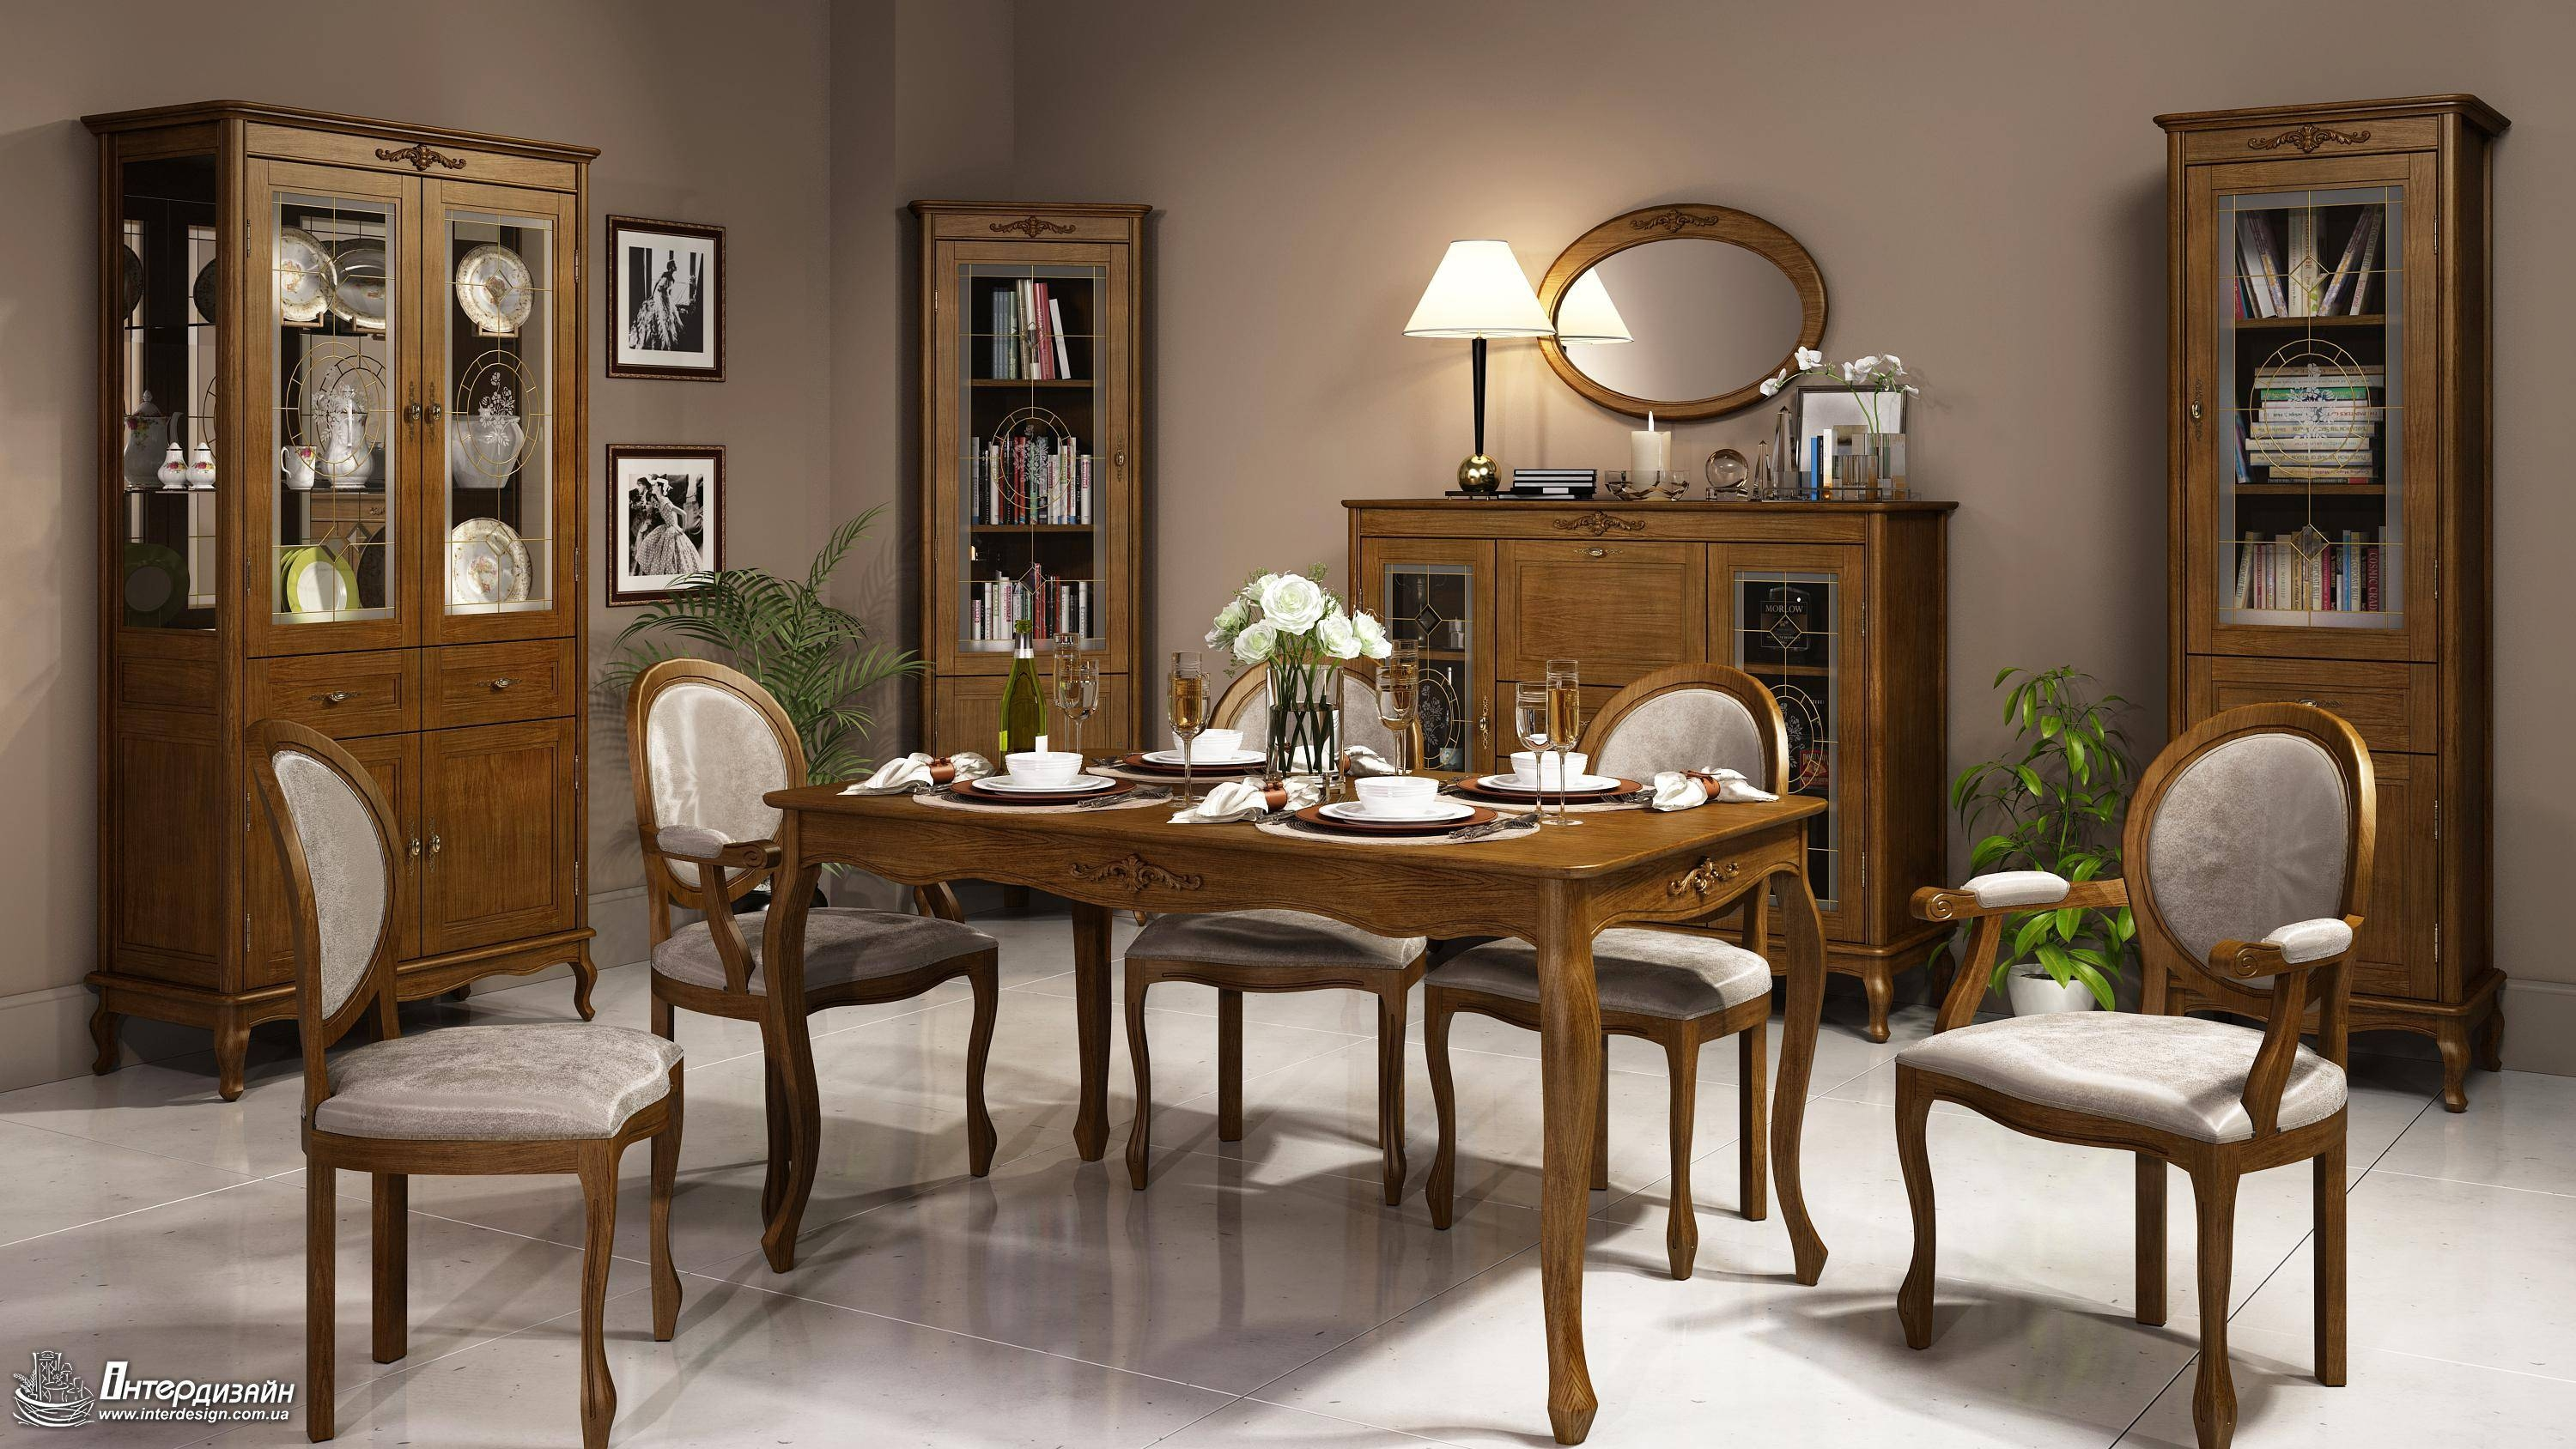 Decorating: Elegant Dining Room Designinterdesignwith Brown With Regard To Recent Dining Room Table Chairs And Sideboards (#4 of 15)